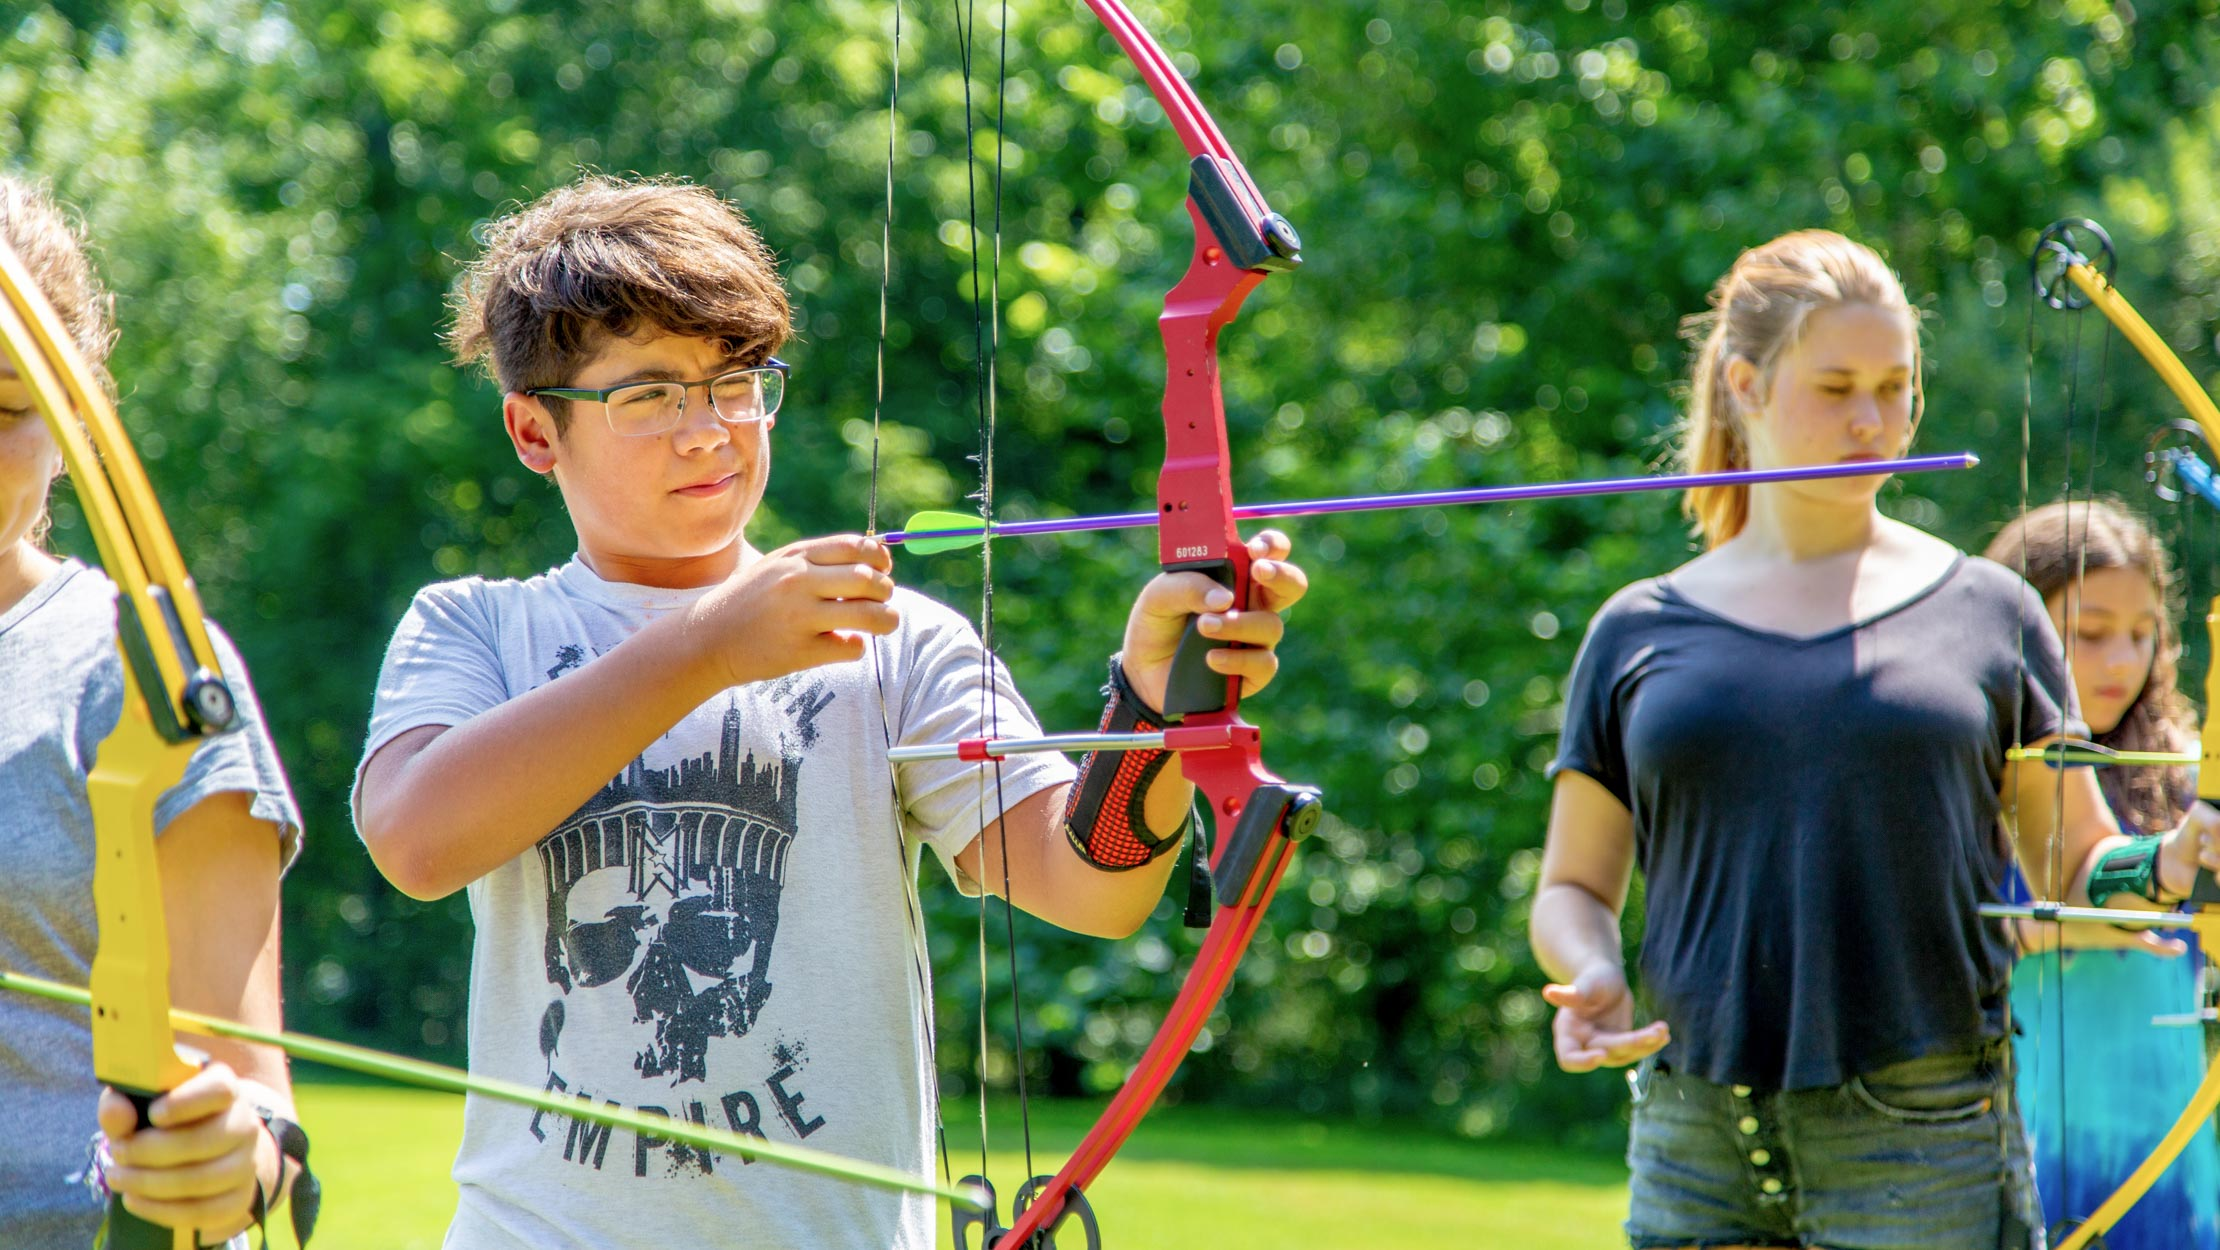 Campers doing archery